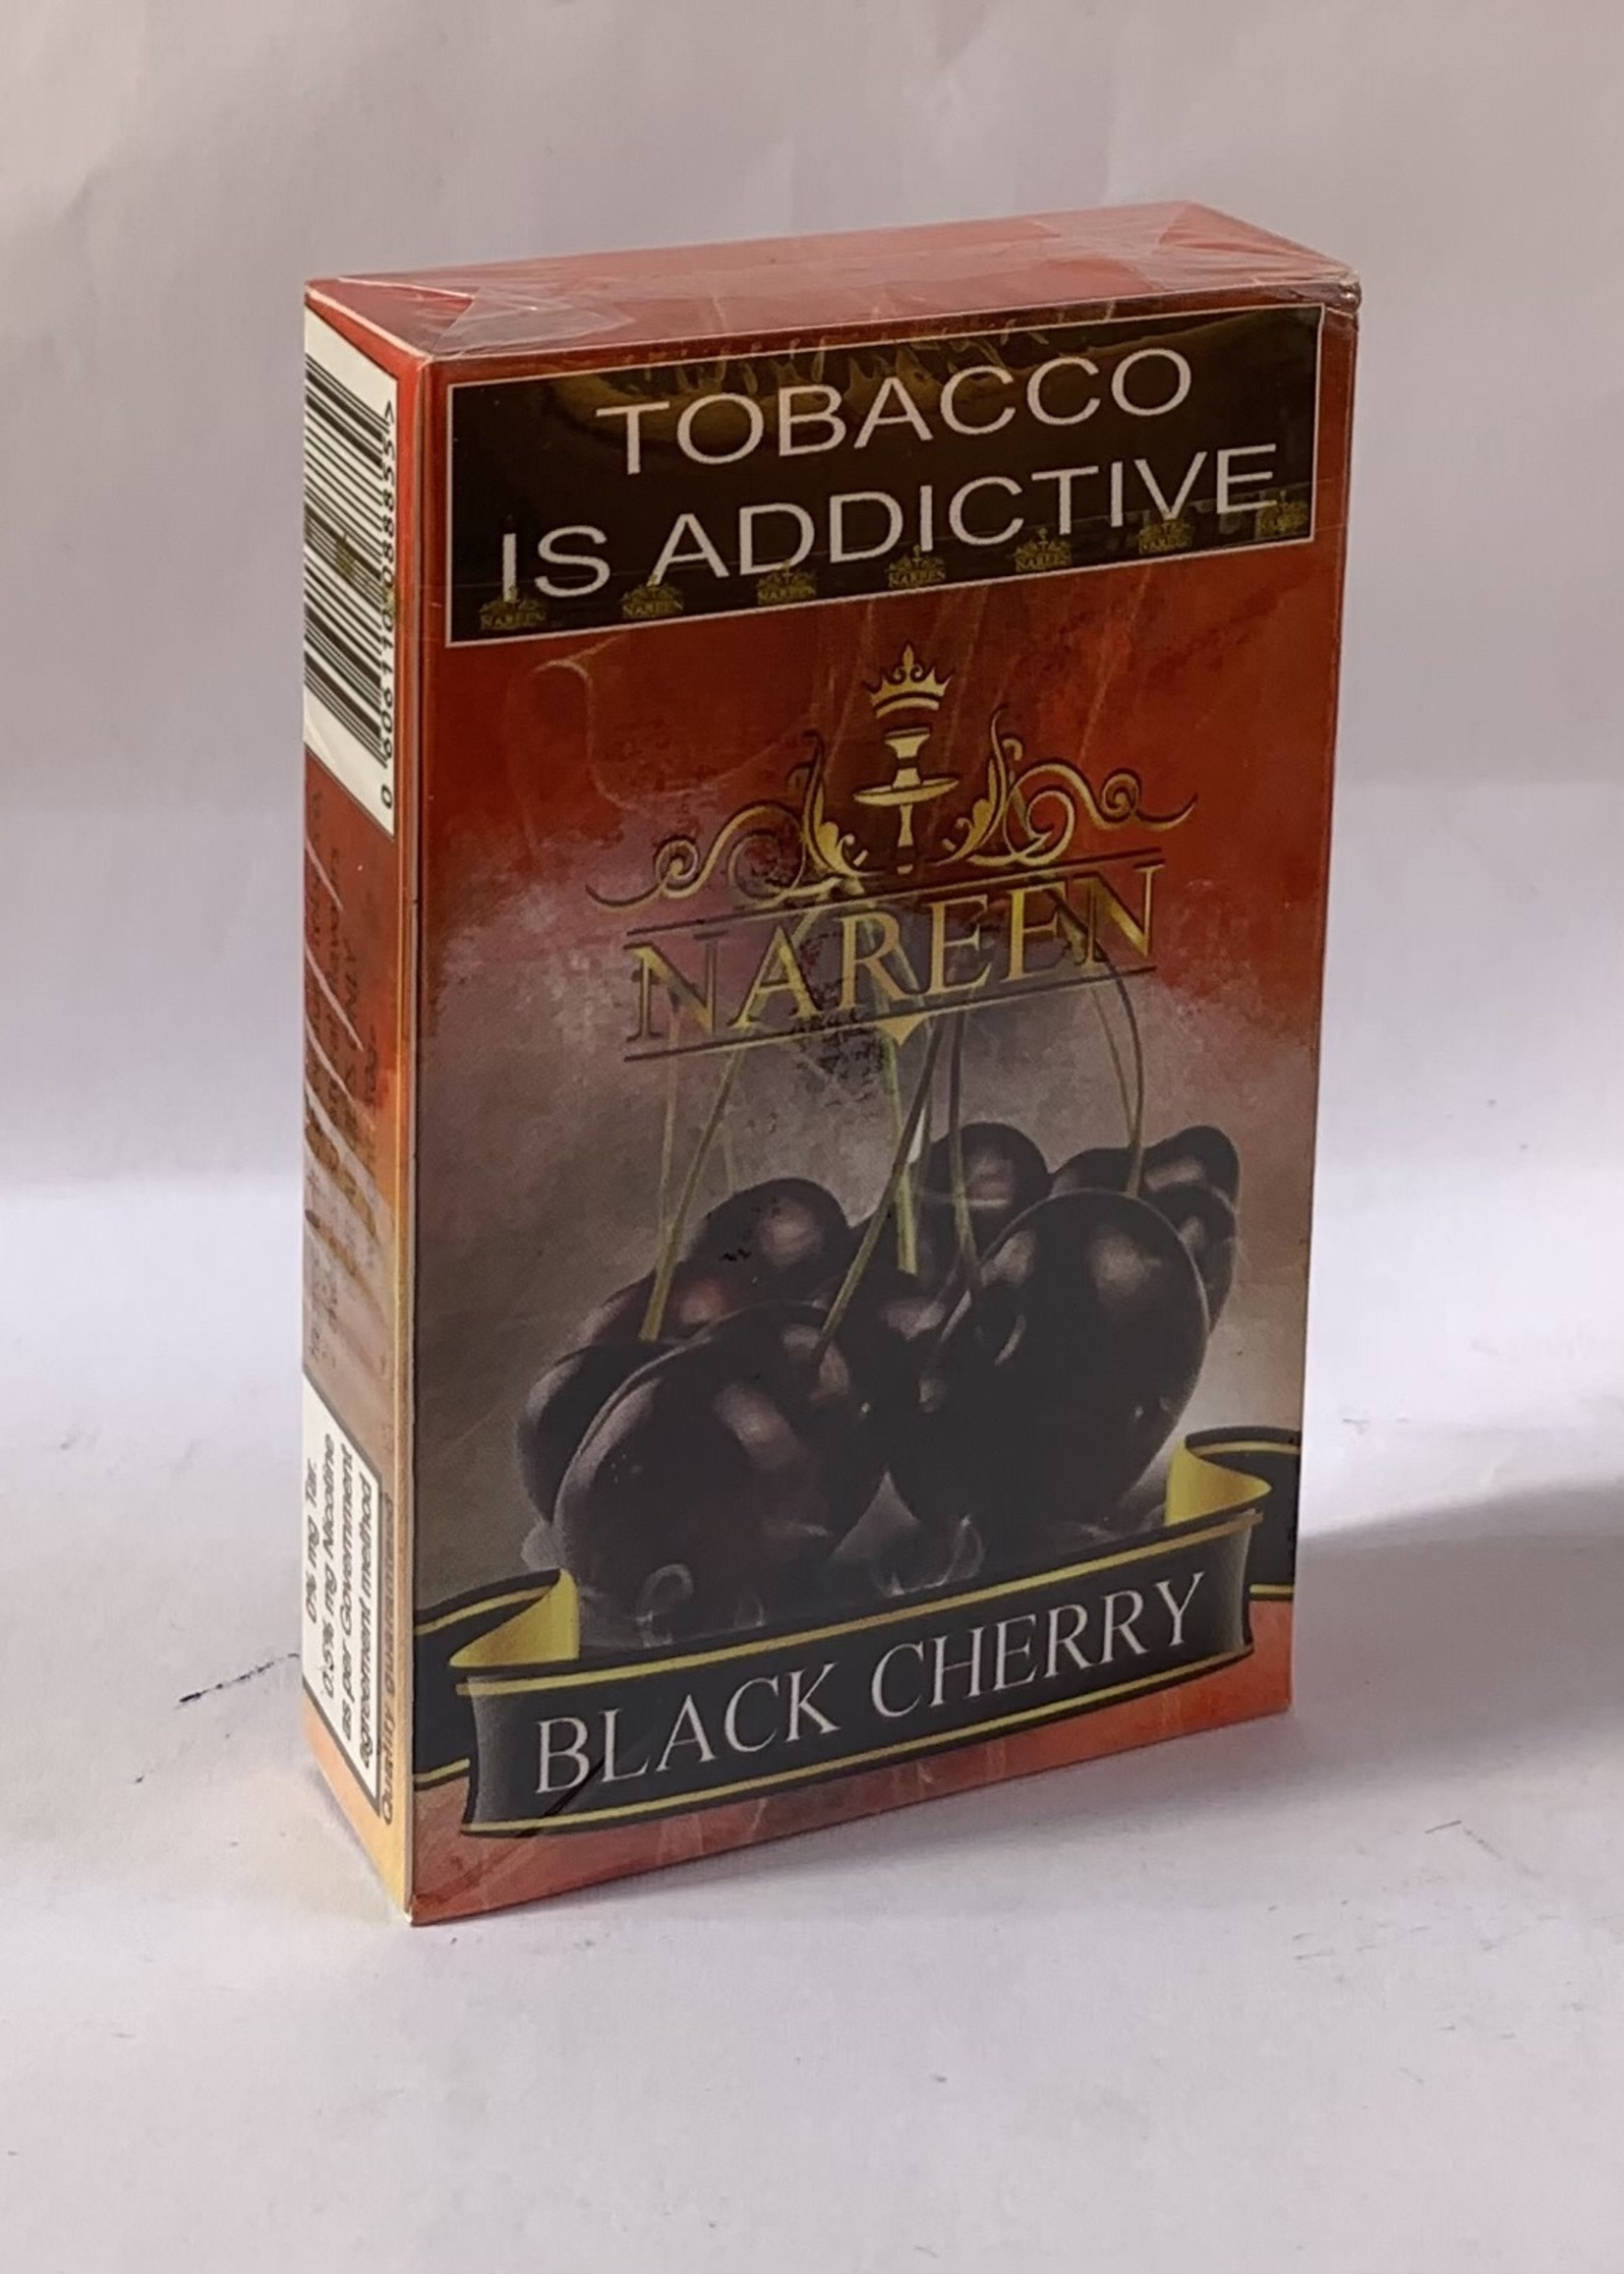 Nareen hubbly flavour - black cherry